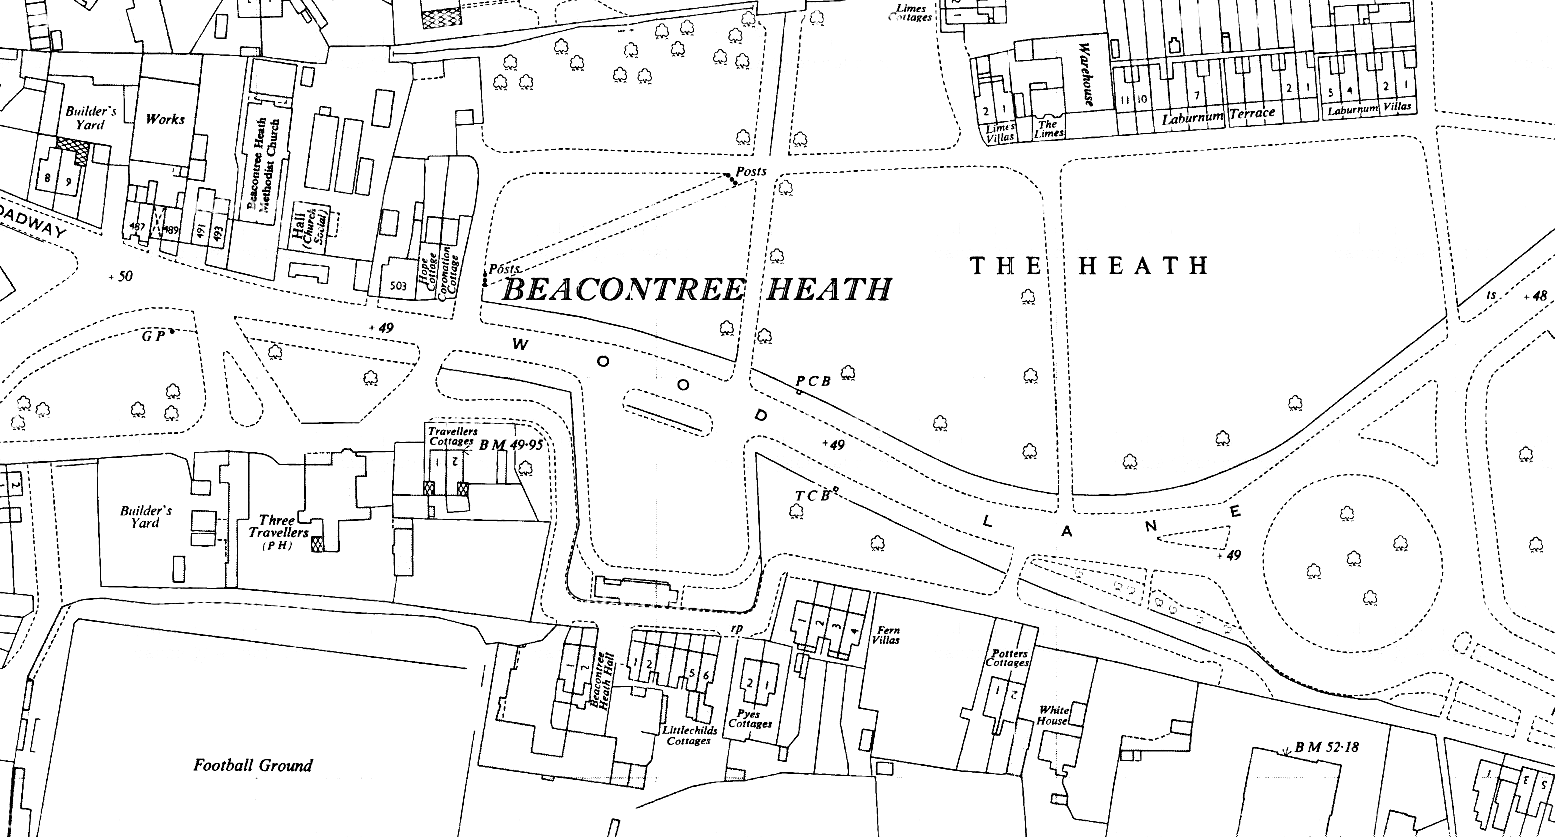 K41--Becontree Heath Box--1960 OS Map Extract 1-1250.png